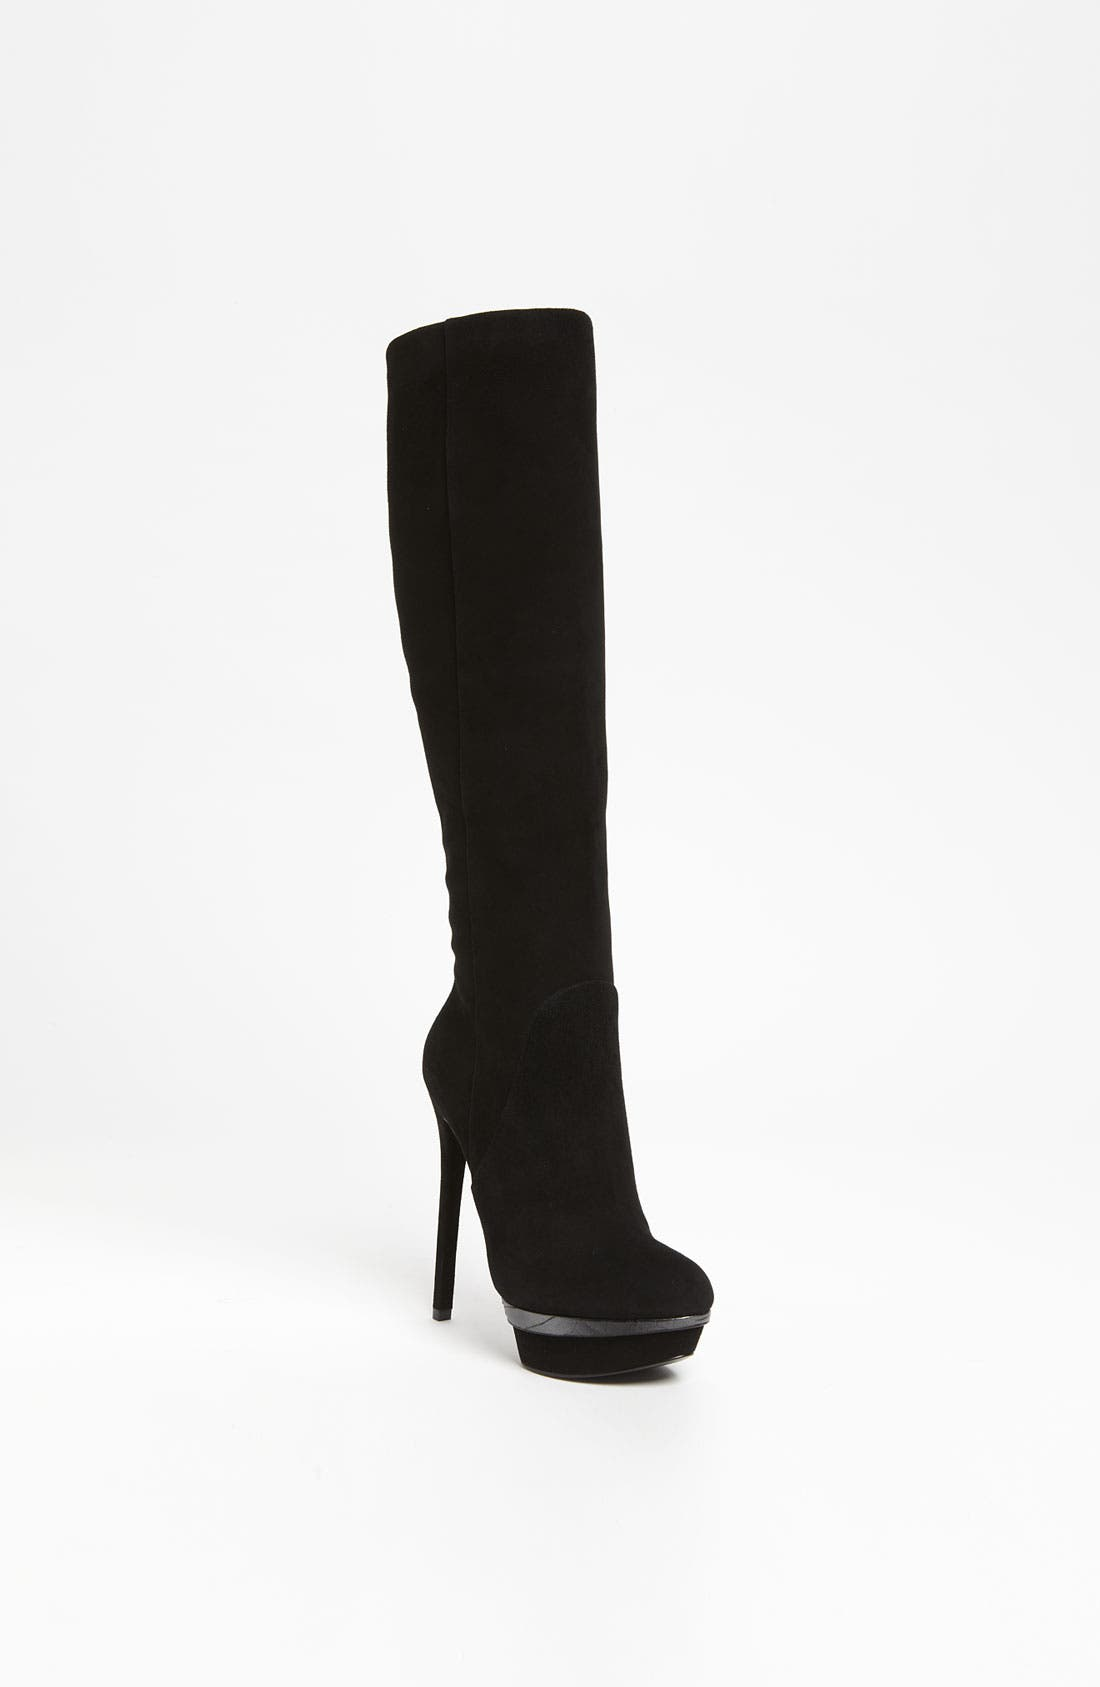 Alternate Image 1 Selected - B Brian Atwood 'Faviera' Tall Boot